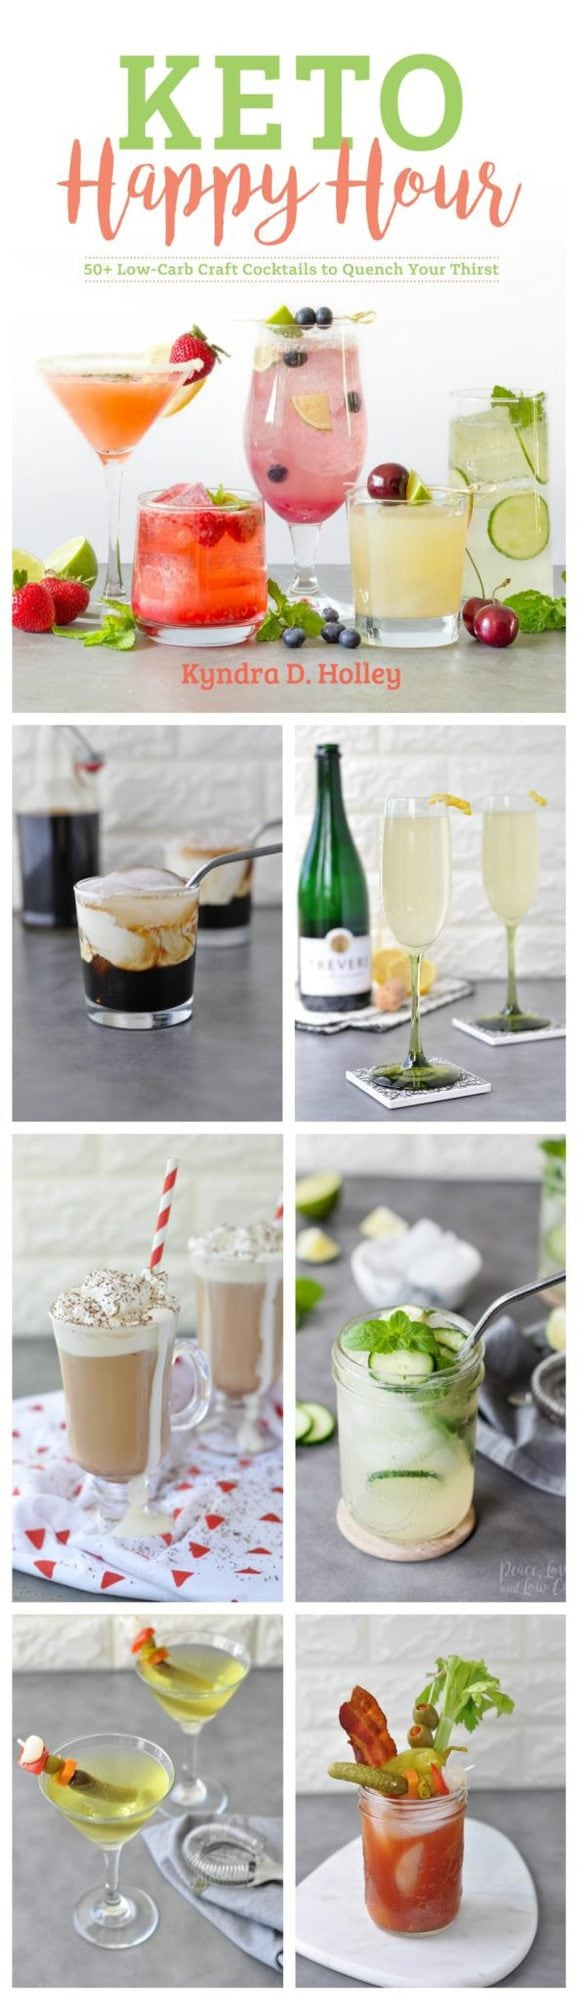 Keto Happy Hour - 50+ Low Carb Craft Cocktails to Quench Your Thirst